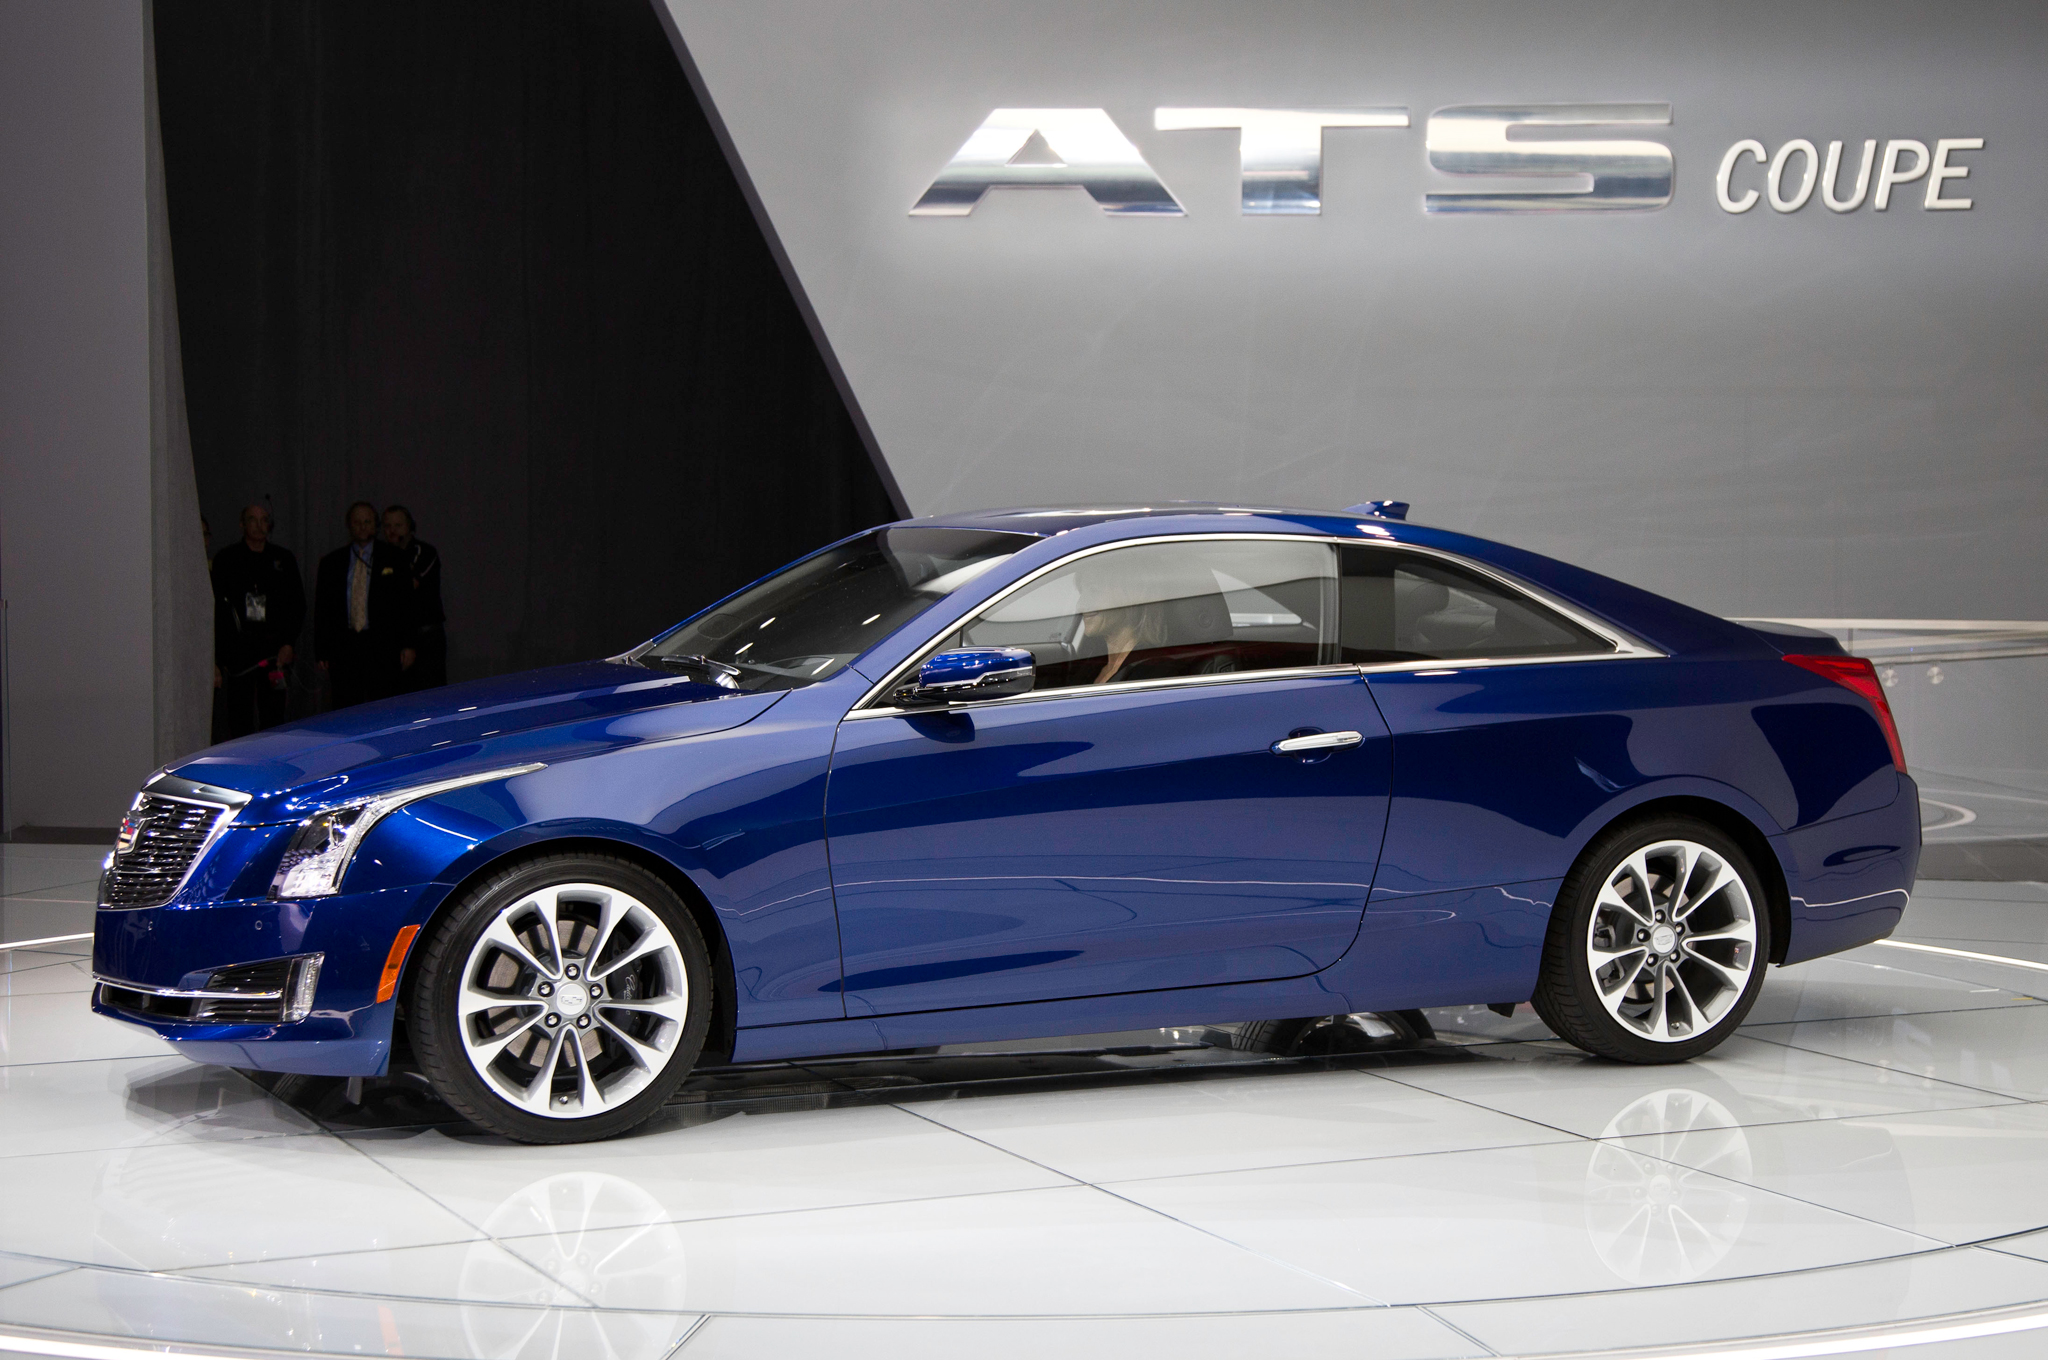 2015 Cadillac Ats Coupe Overview 233 Cars Performance Reviews